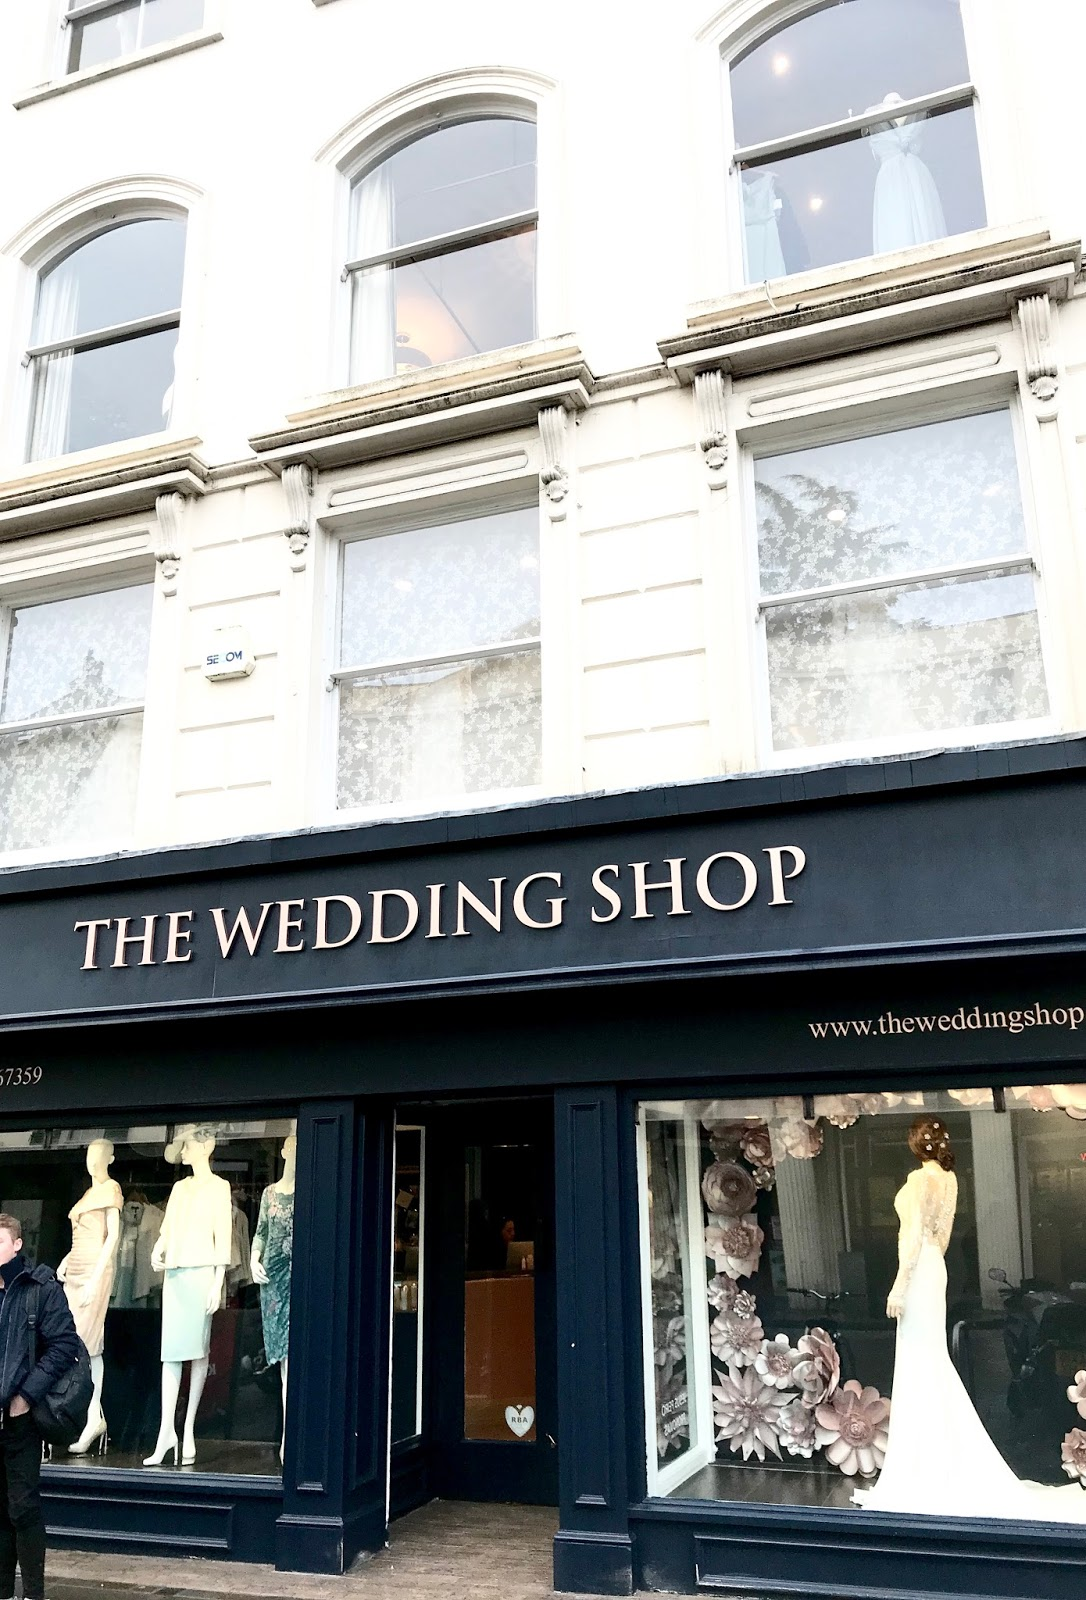 1db2a52cd9f594  1 Tell us a little more about the history of The Wedding Shop. When did it  first open  When did you take over the business